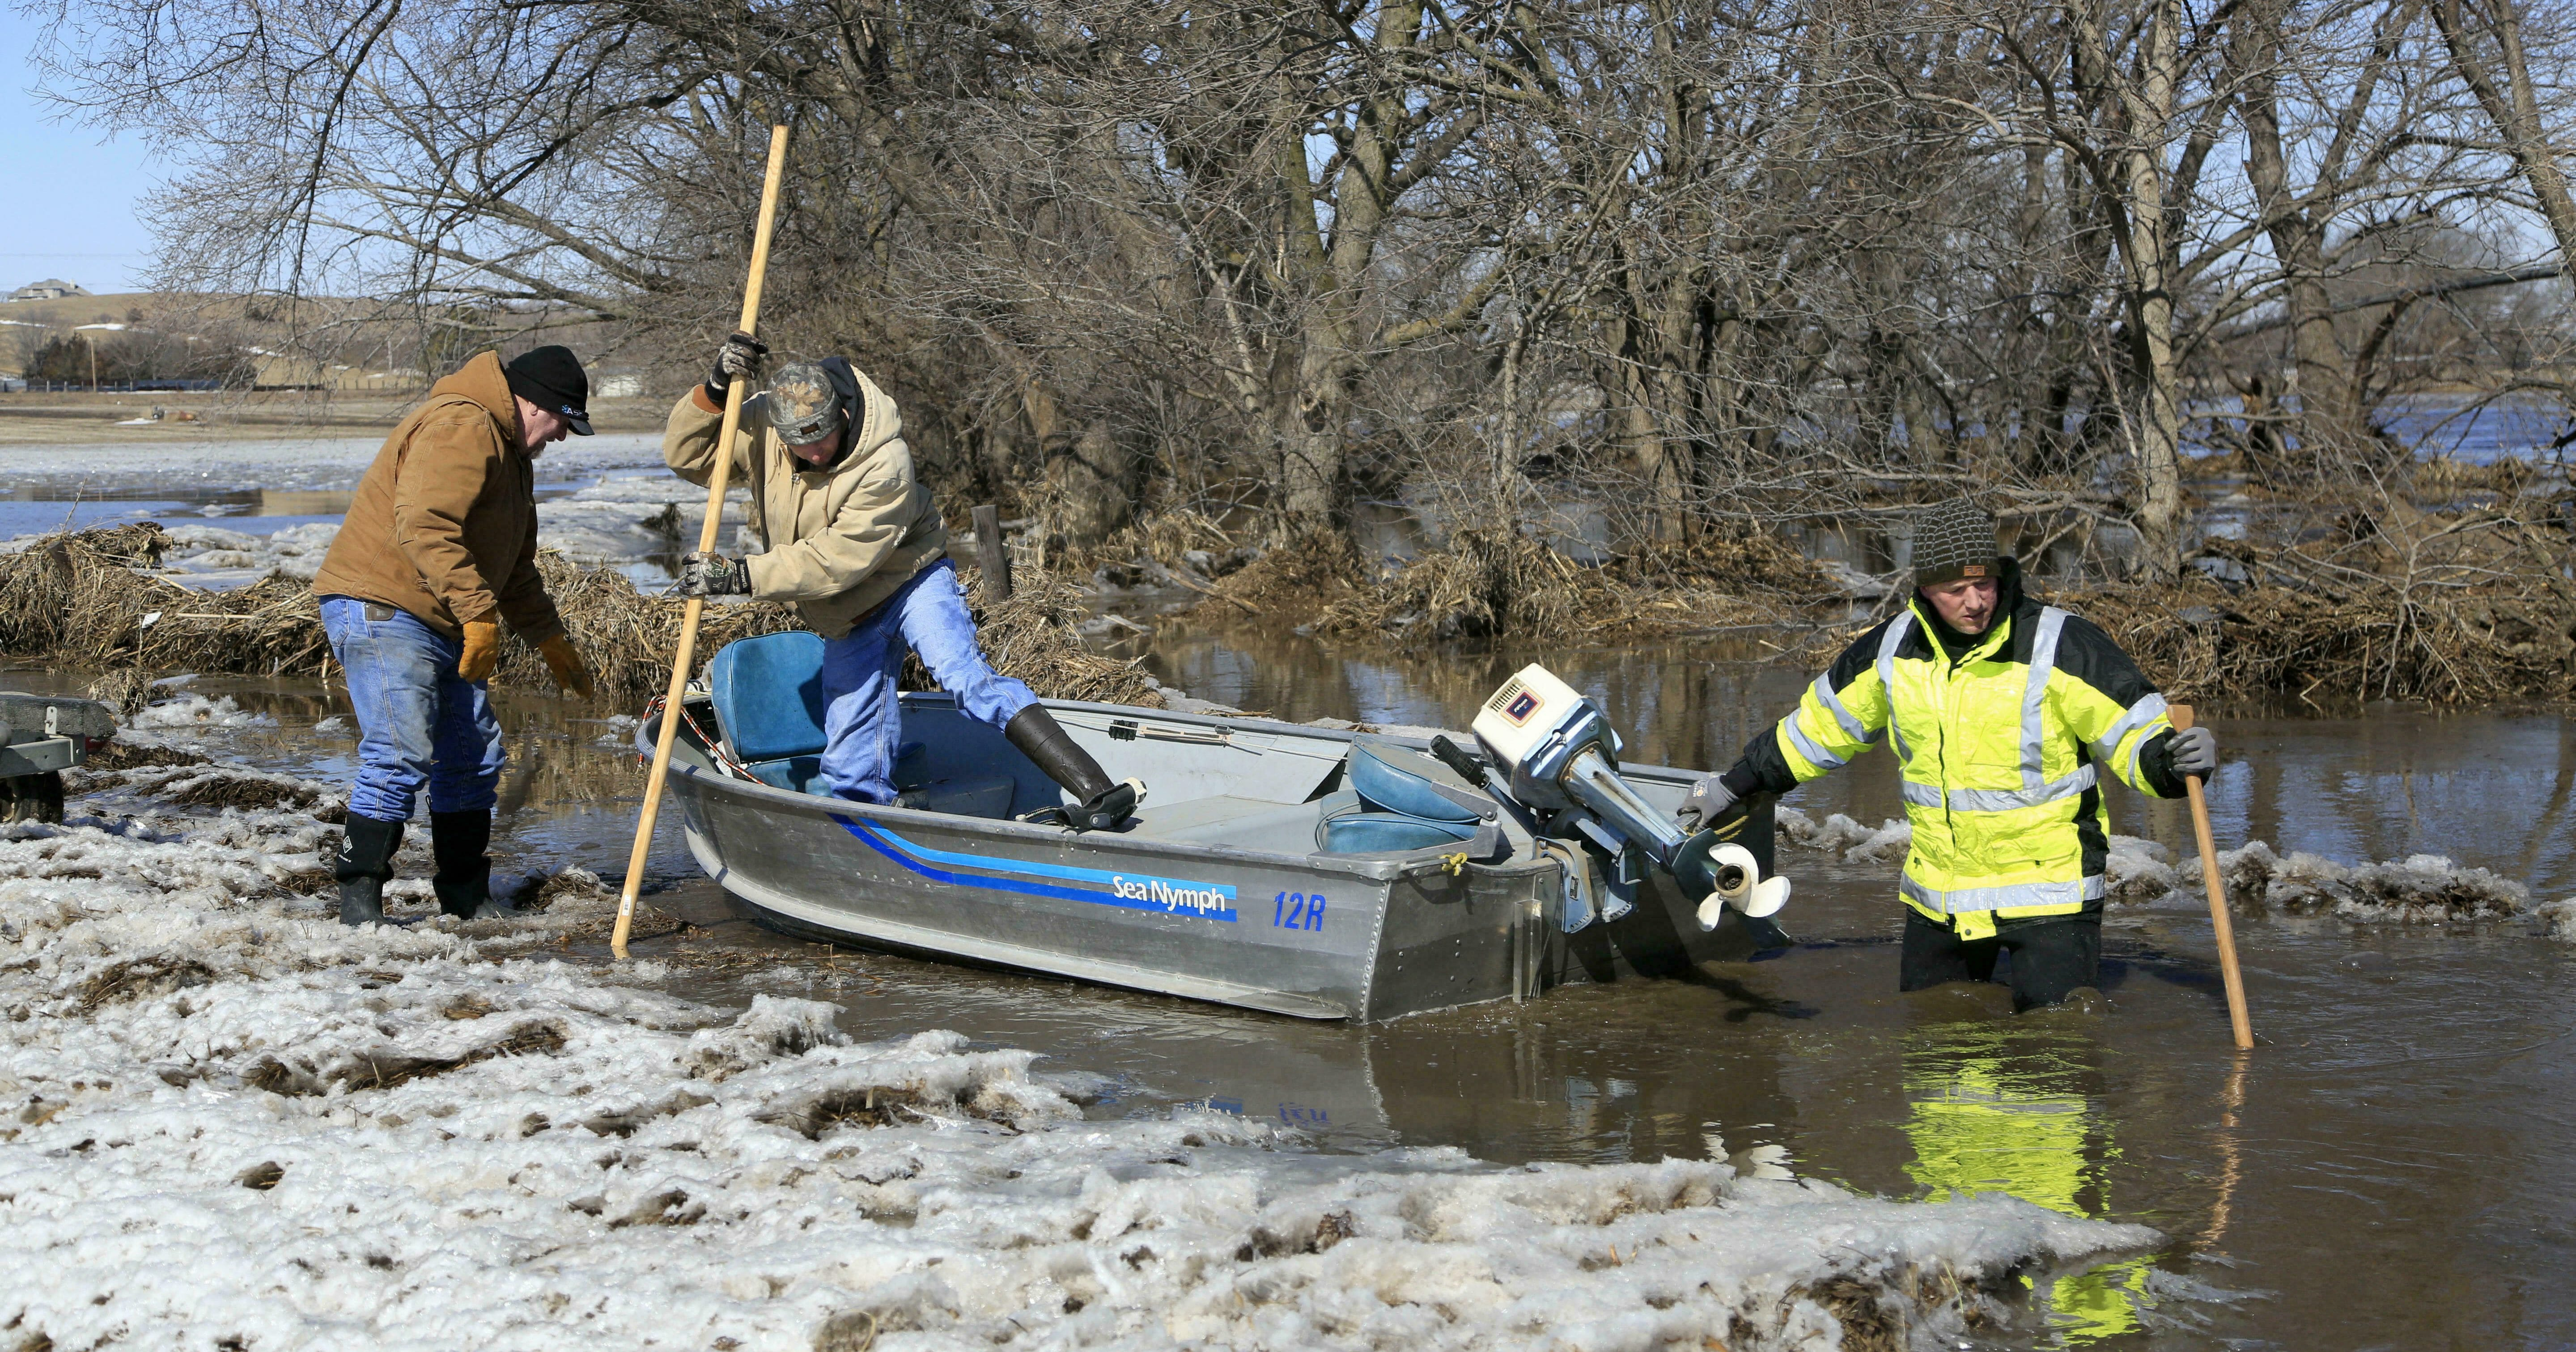 Tom Wilke, left, his son Chad, center, and Nick Kenny launch a boat into the swollen waters of the North Fork of the Elkhorn River, to check on Witke's flooded property, in Norfolk, Nebraska on March 15, 2019.